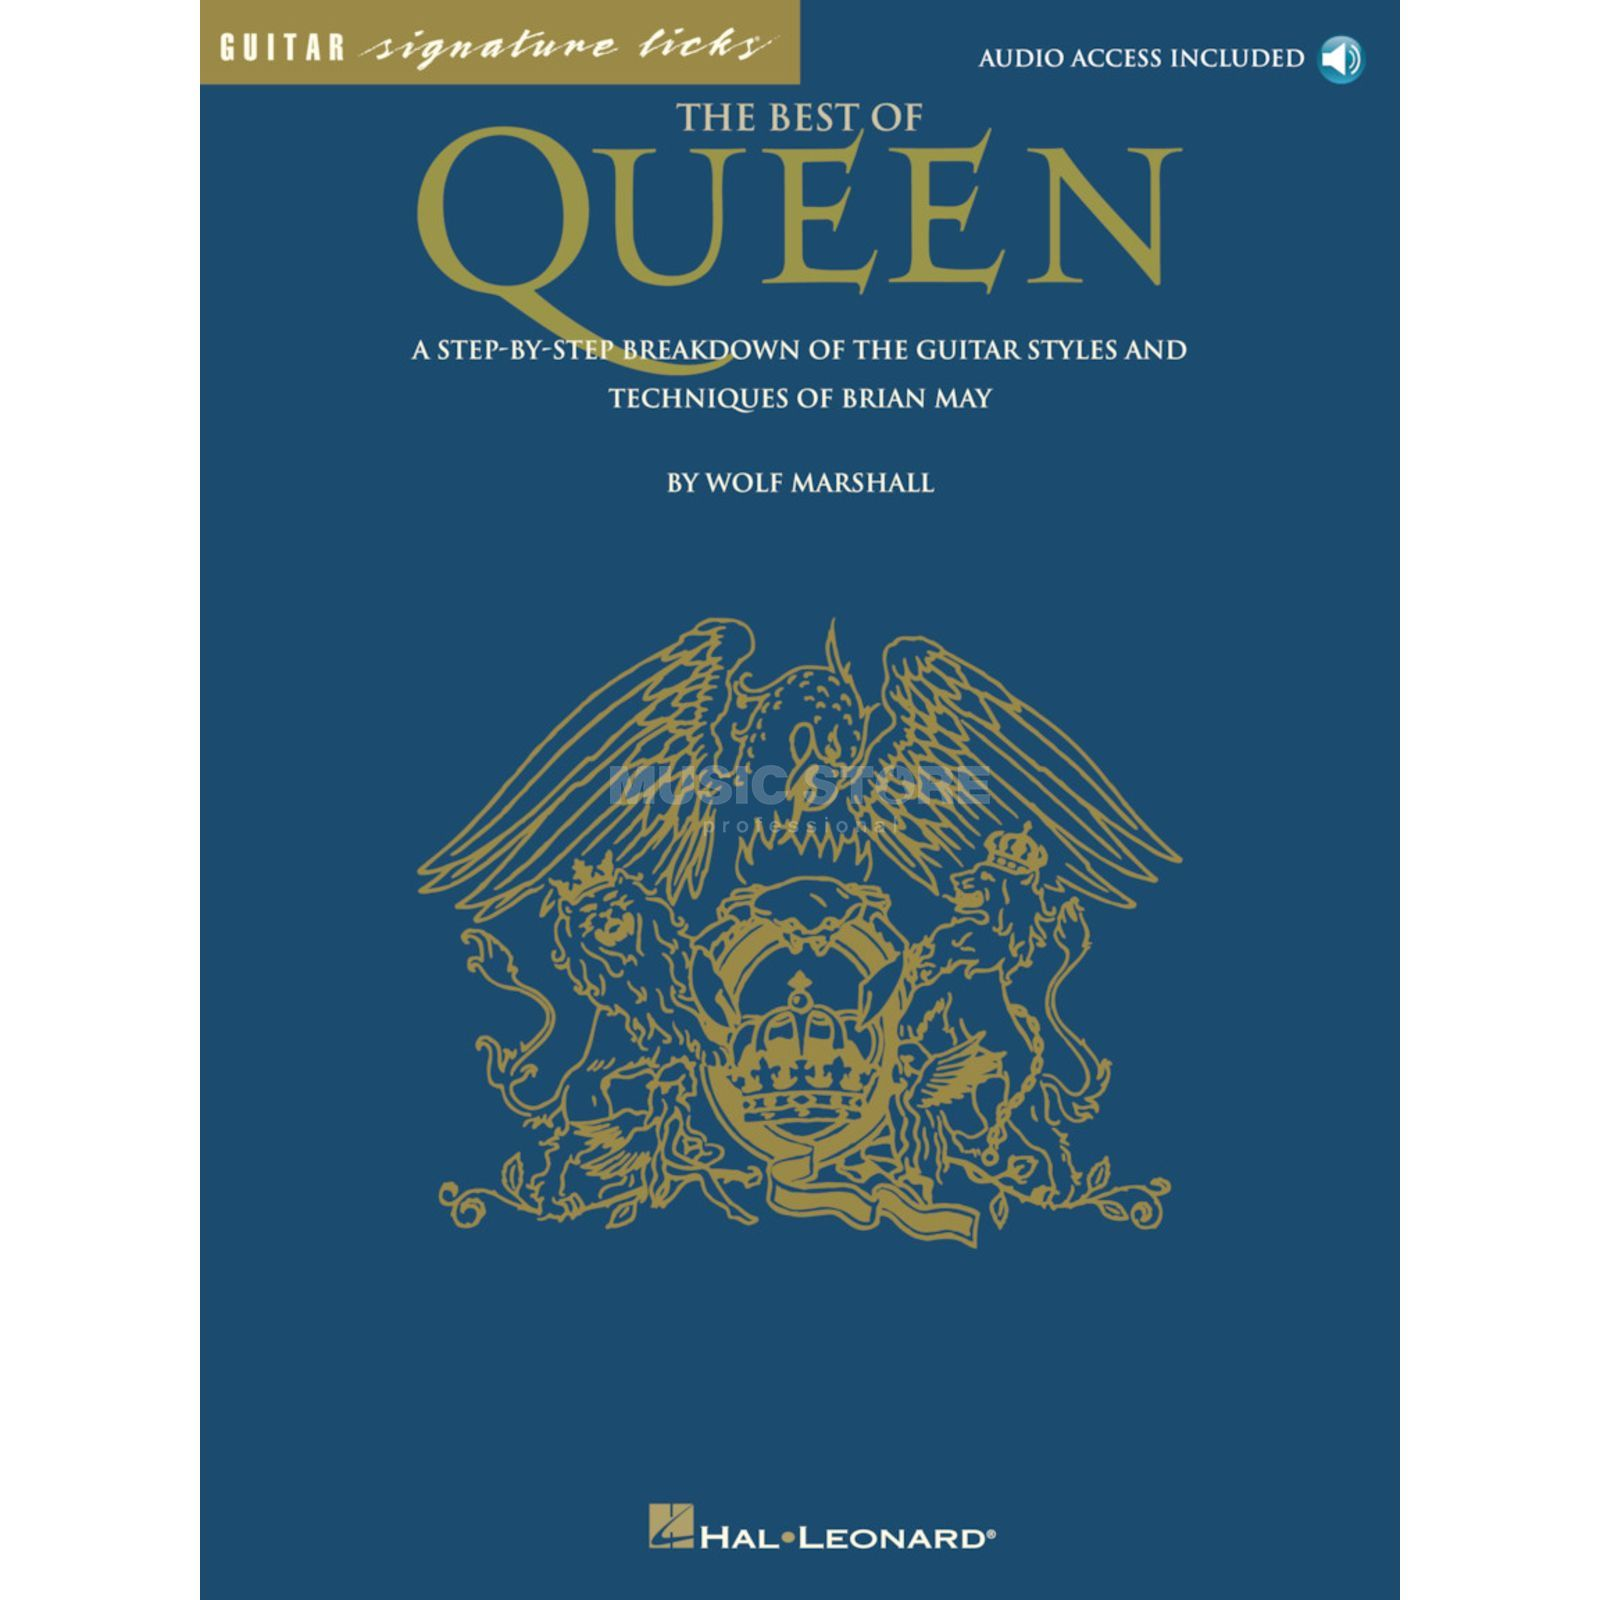 Hal Leonard Queen: Best Of Guitar Signature Licks Produktbild